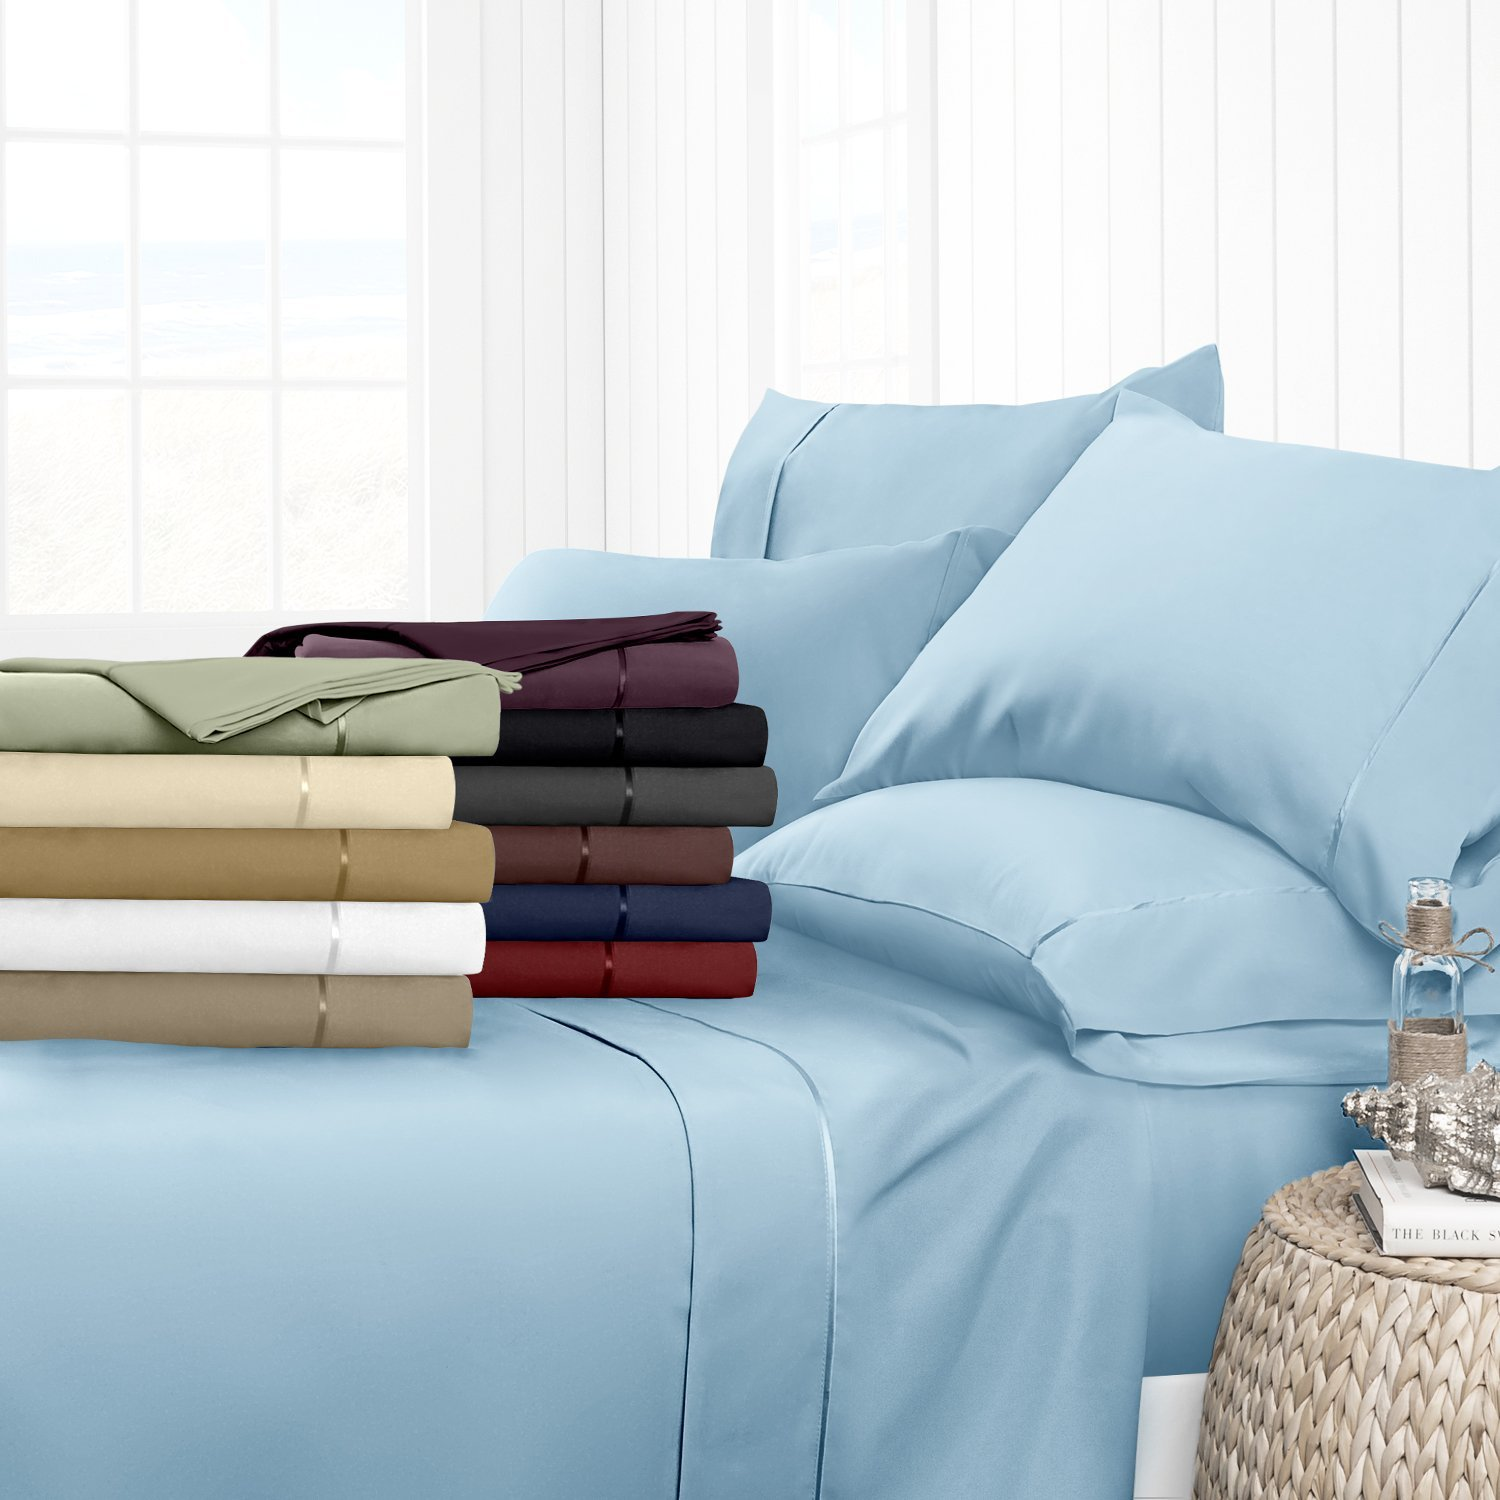 (King, Sky Blue) Egyptian Luxury 1700 Hotel Collection 4-Piece Bed Sheet Set Deep Pockets, Wrinkle and Fade Resistant, Hypoallergenic Sheet and Pillow Case Set King, Sky Blue B076VQC298 キング|スカイブルー スカイブルー キング